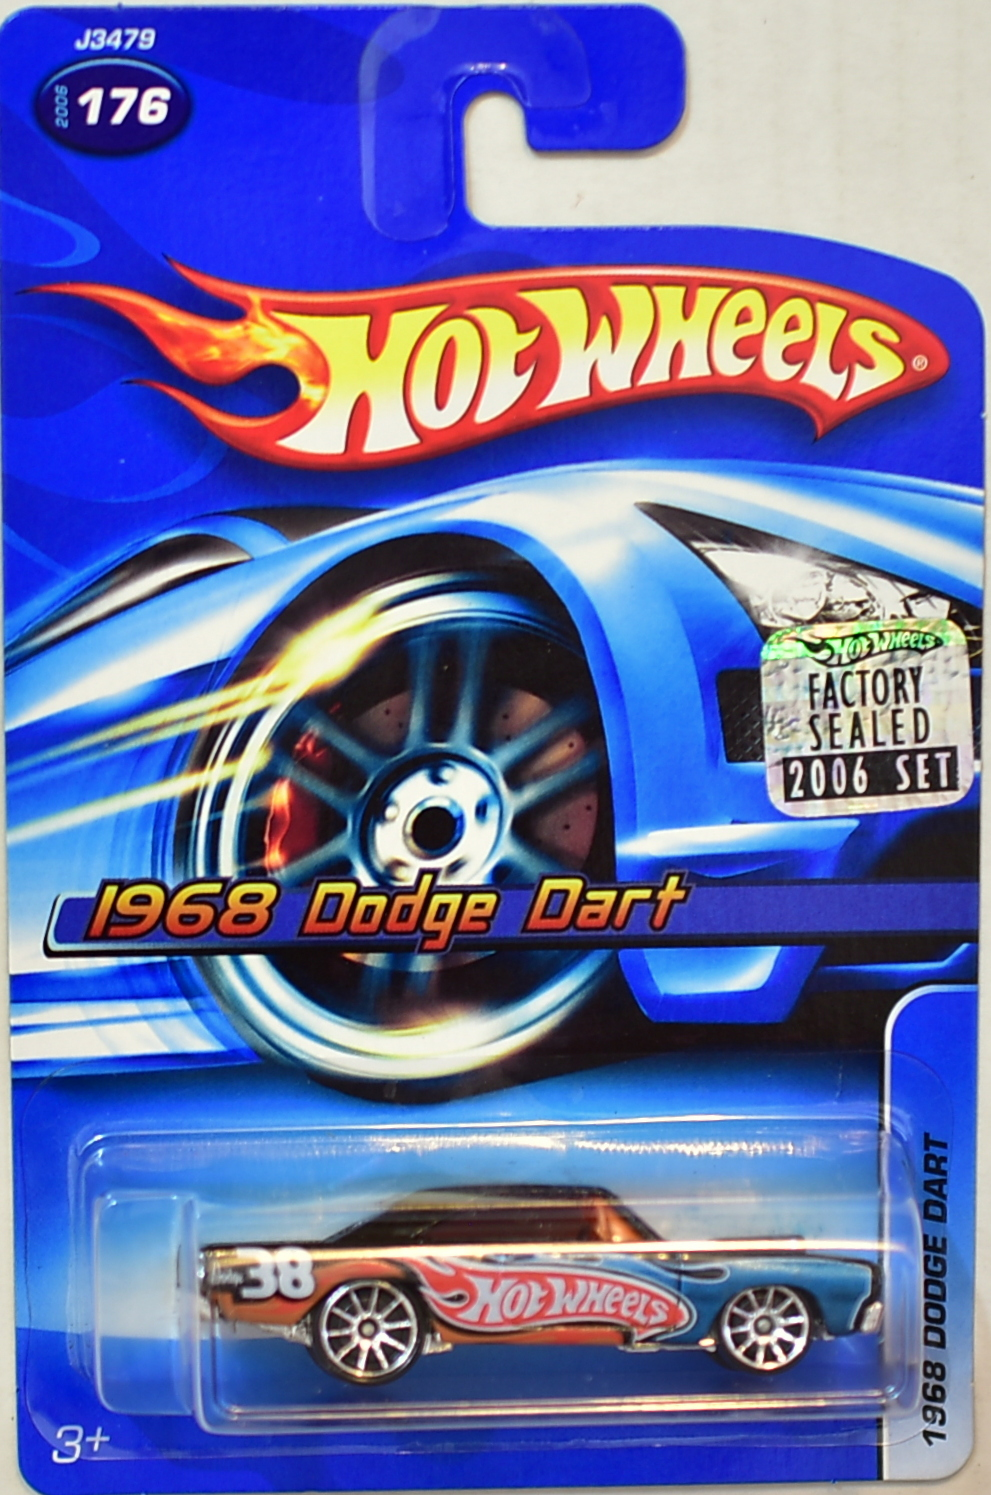 HOT WHEELS 2006 1968 DODGE DART #176 FACTORY SEALED